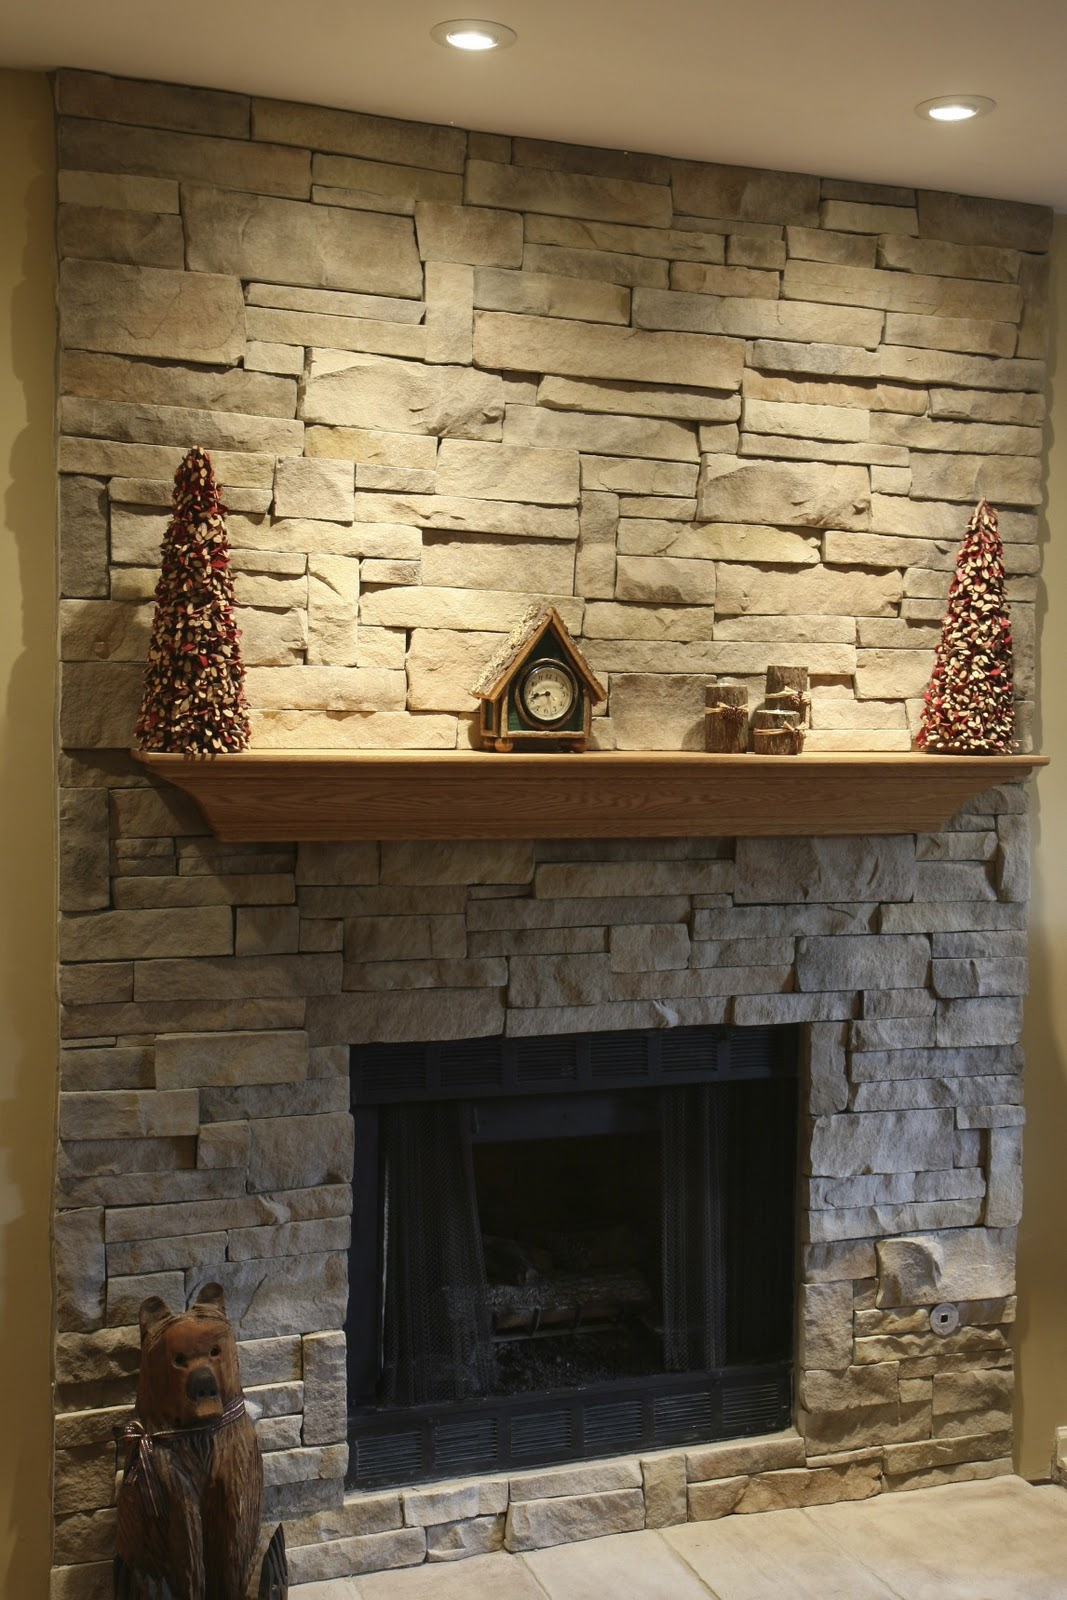 north star stone stone fireplaces stone exteriors ledge stone for